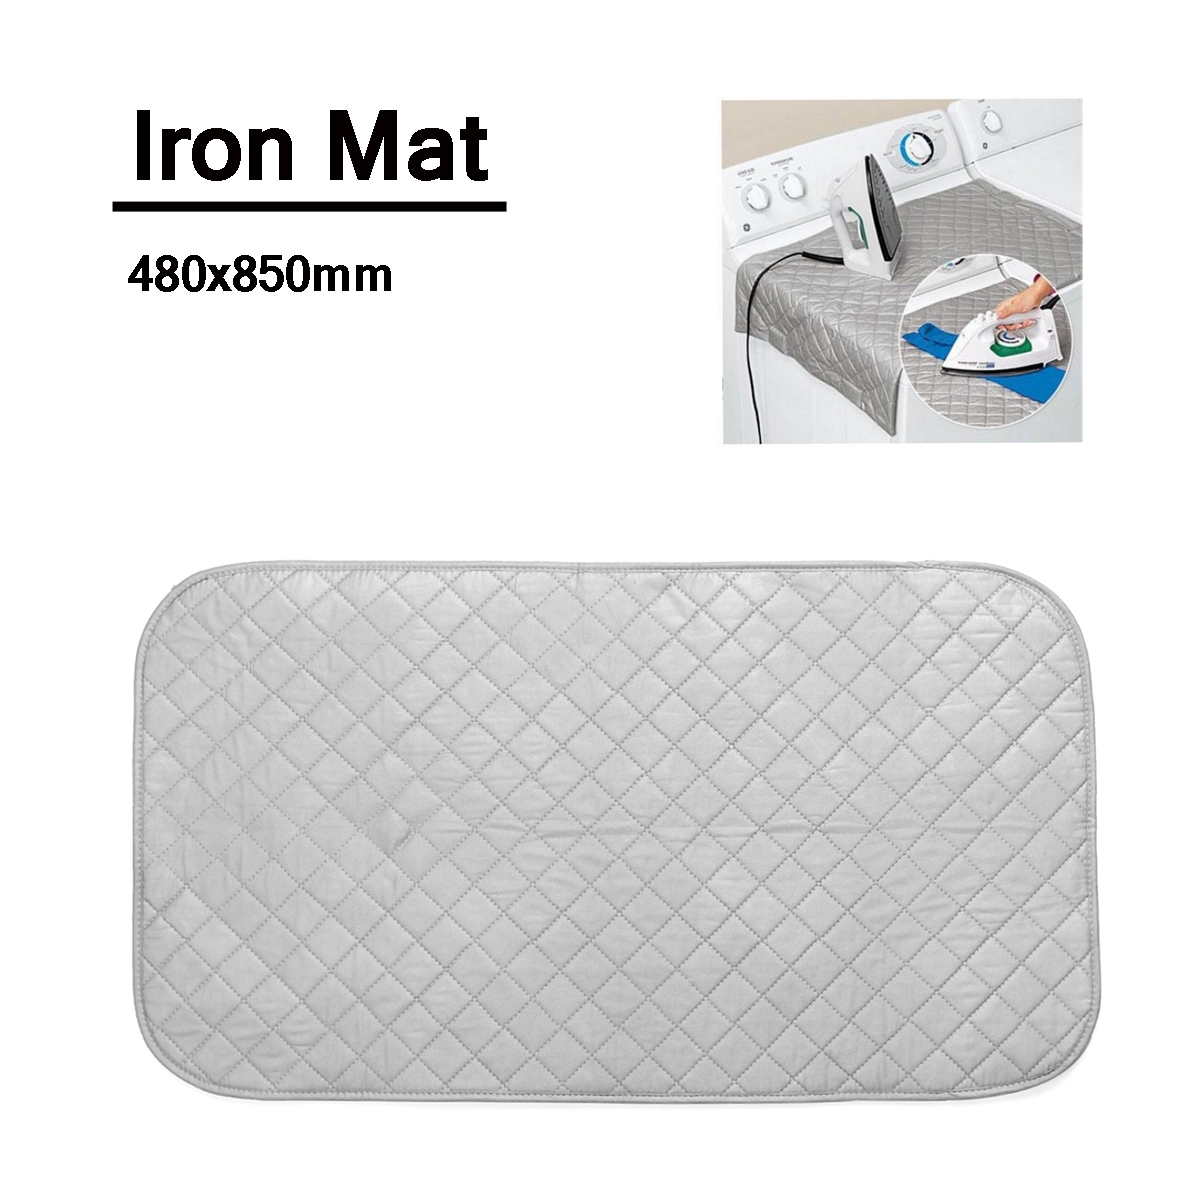 Portable Compact Ironing Mat Mesh Cloth Ironing ironingboard Mattress for Home Bathroom Laundry